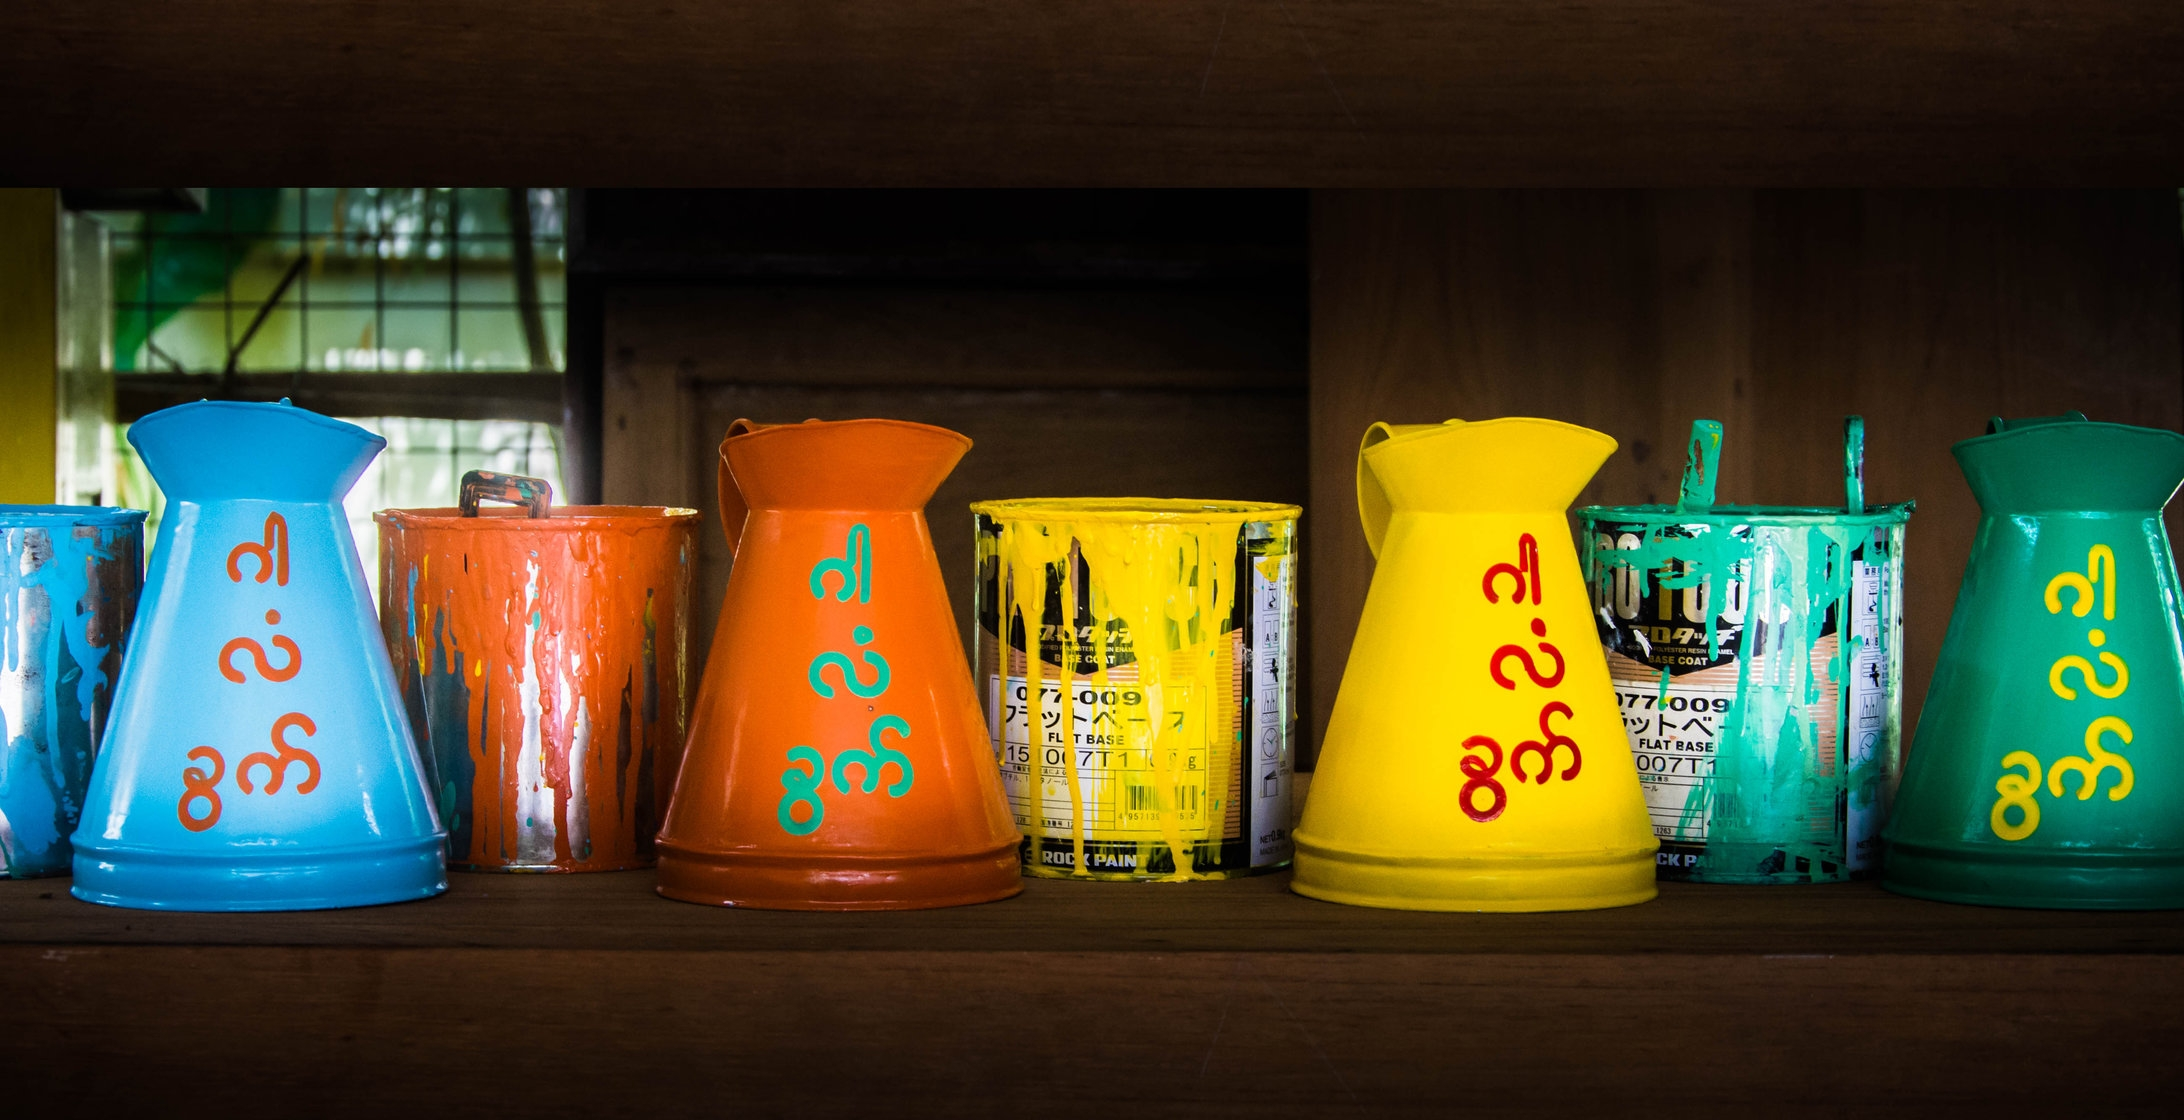 Beautiful Jugs at Pomelo for Myanmar, Yangon. Fair trade crafts shop.